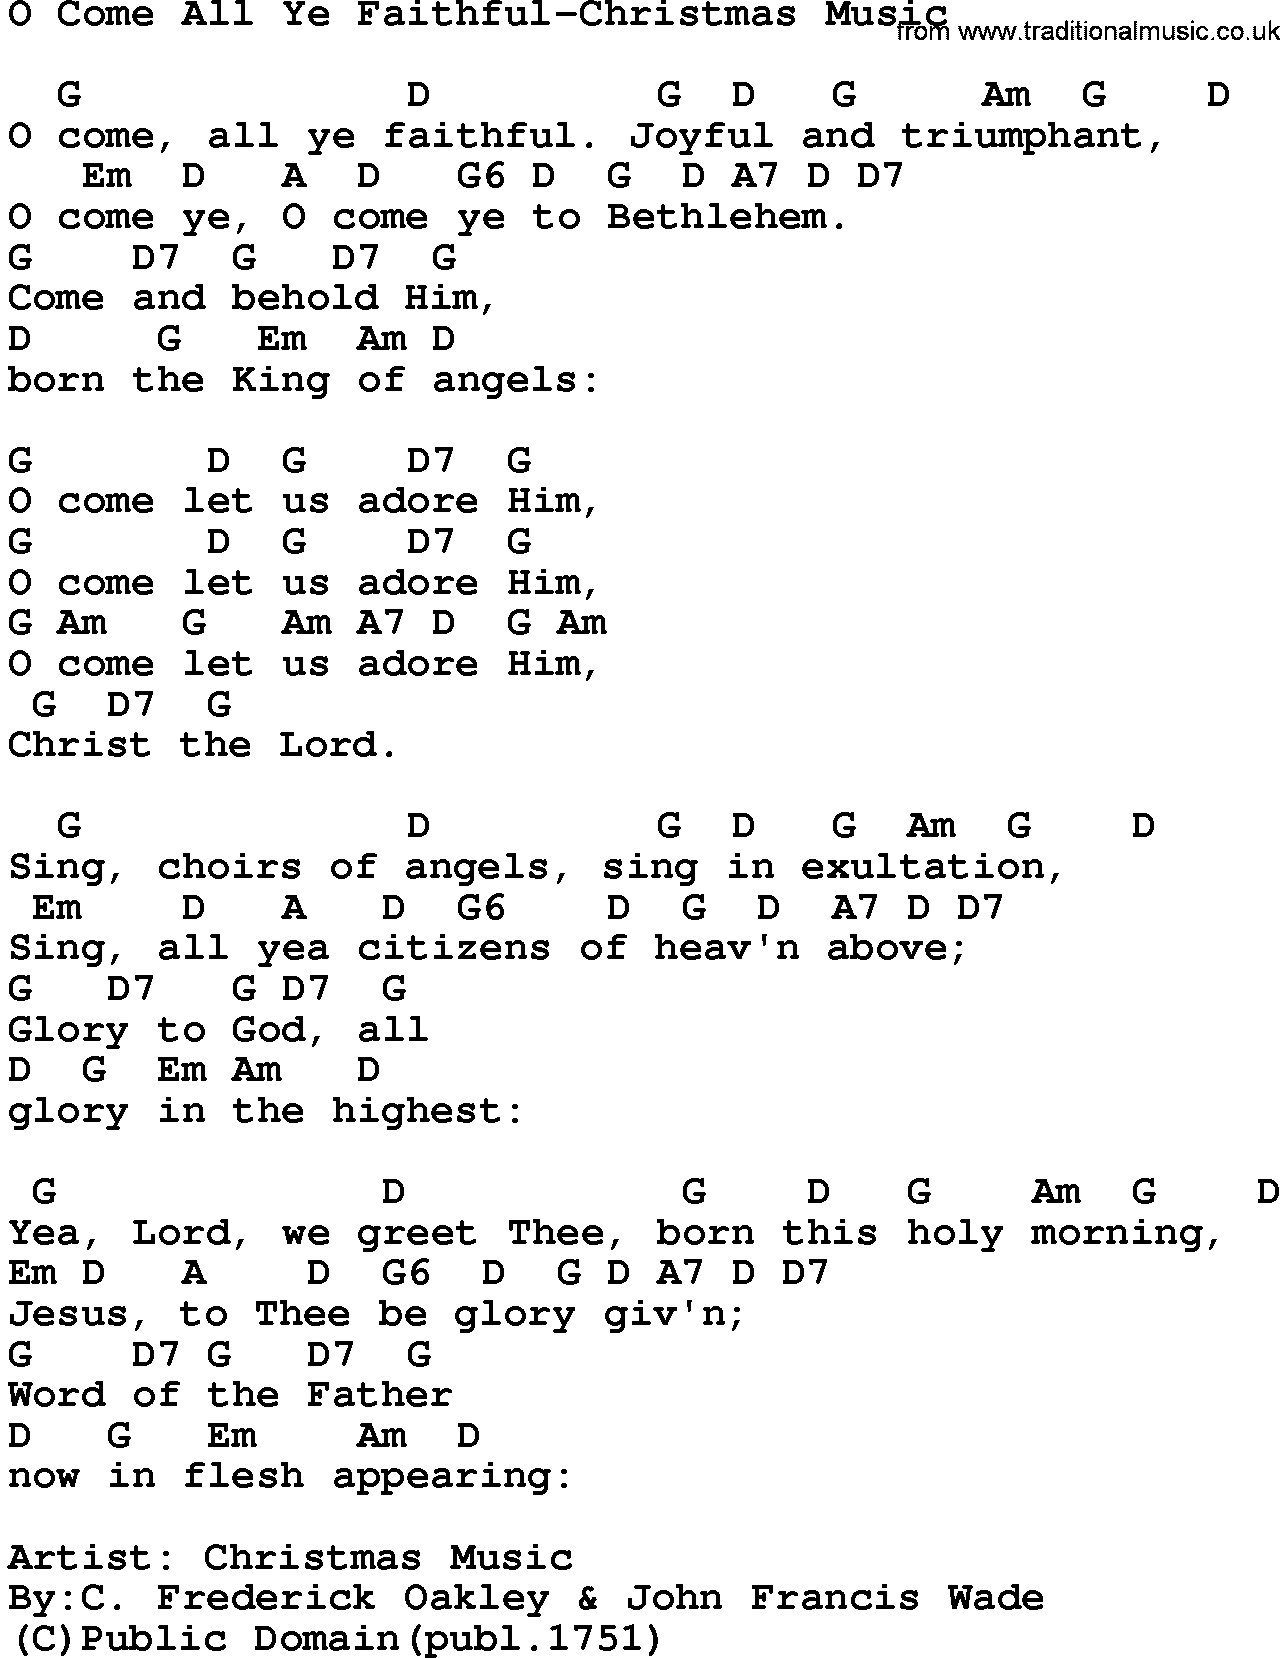 Song: O Come All Ye Faithful-Christmas Music, lyrics and chords.